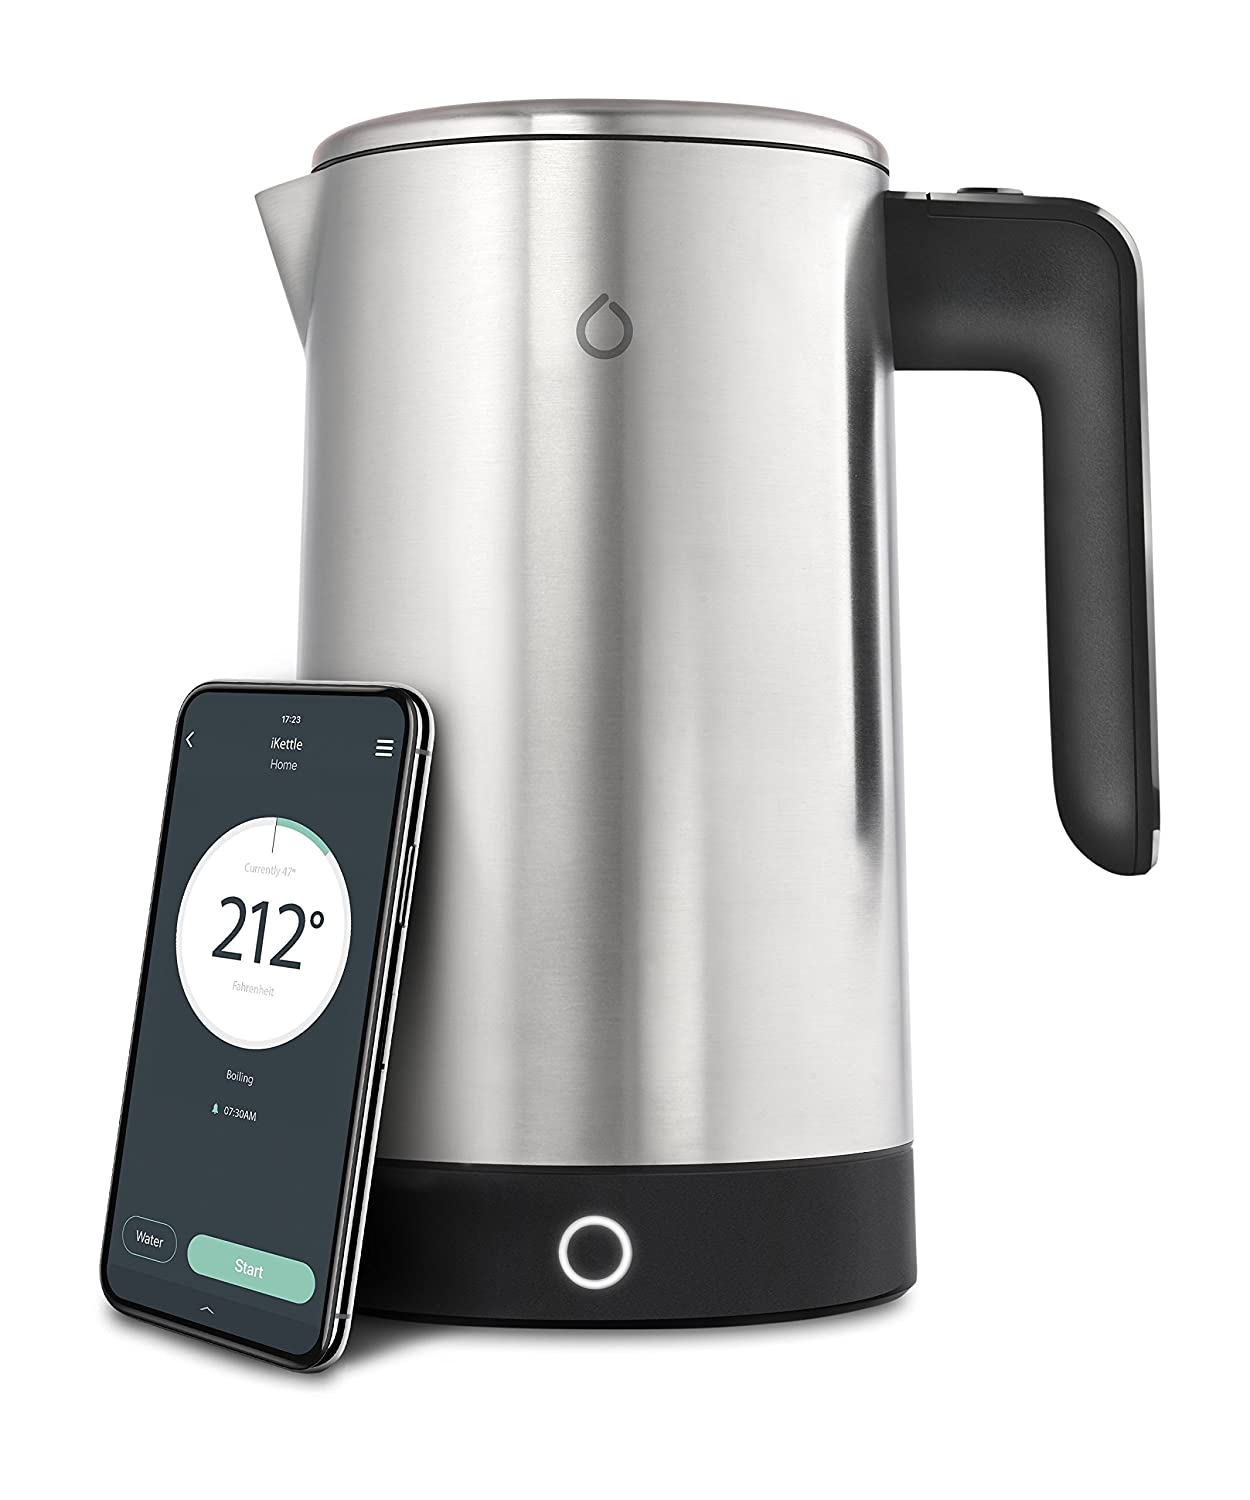 Smarter SMKET01-US Electric iKettle, Silver SMKET01 - US